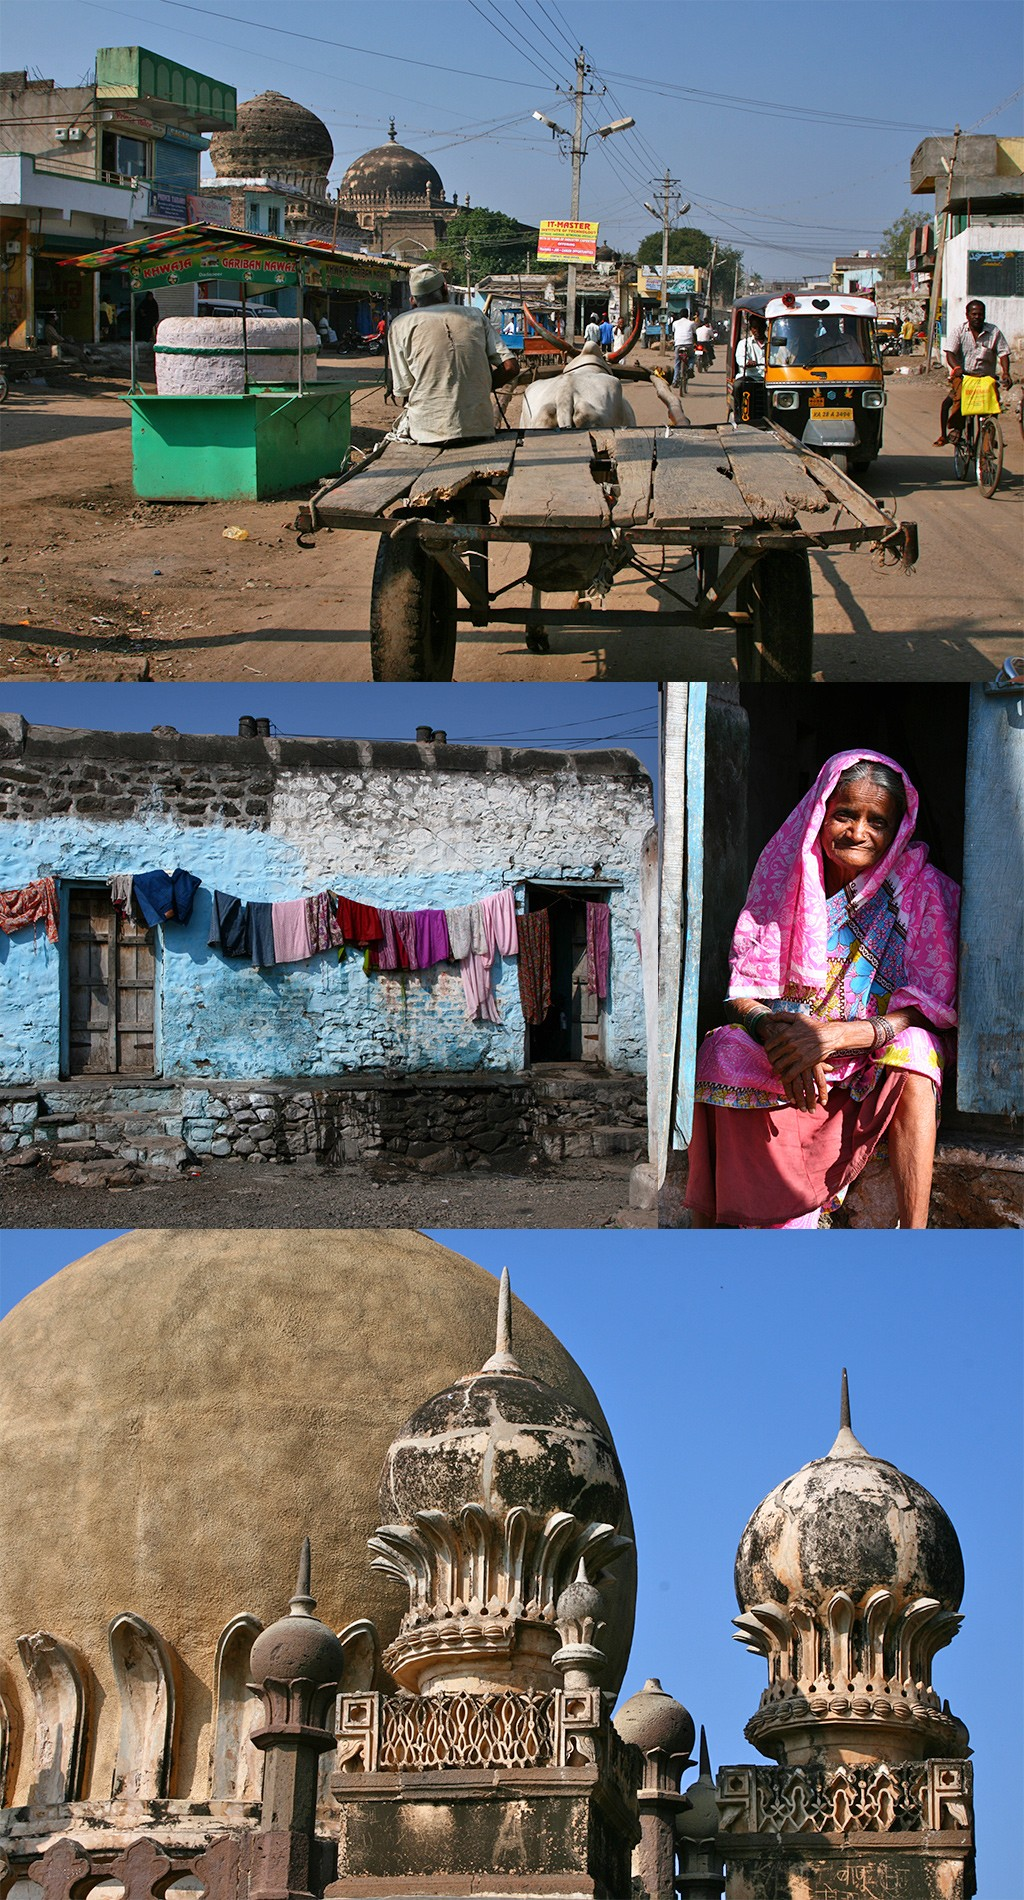 India off the beaten track - Bijapur